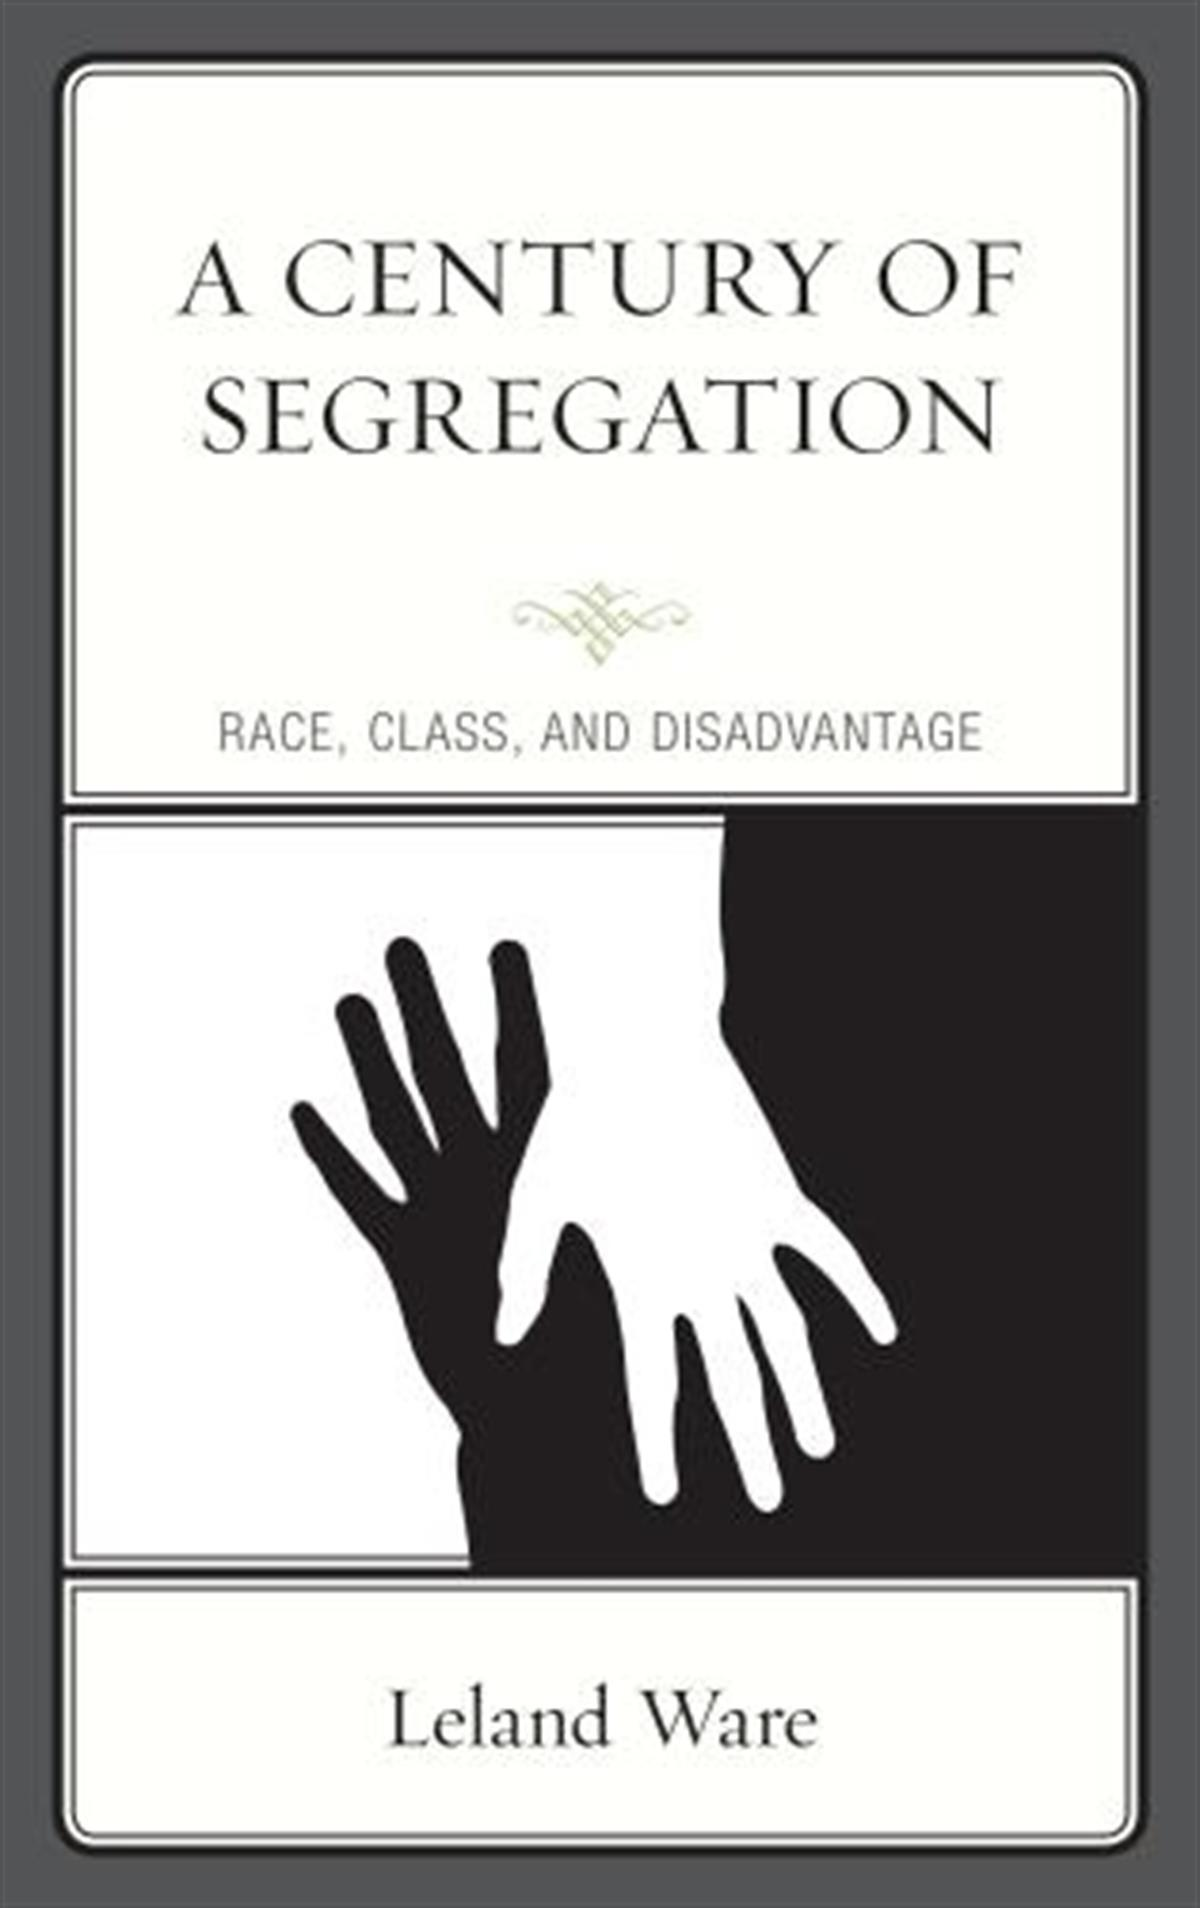 A Century of Segregation